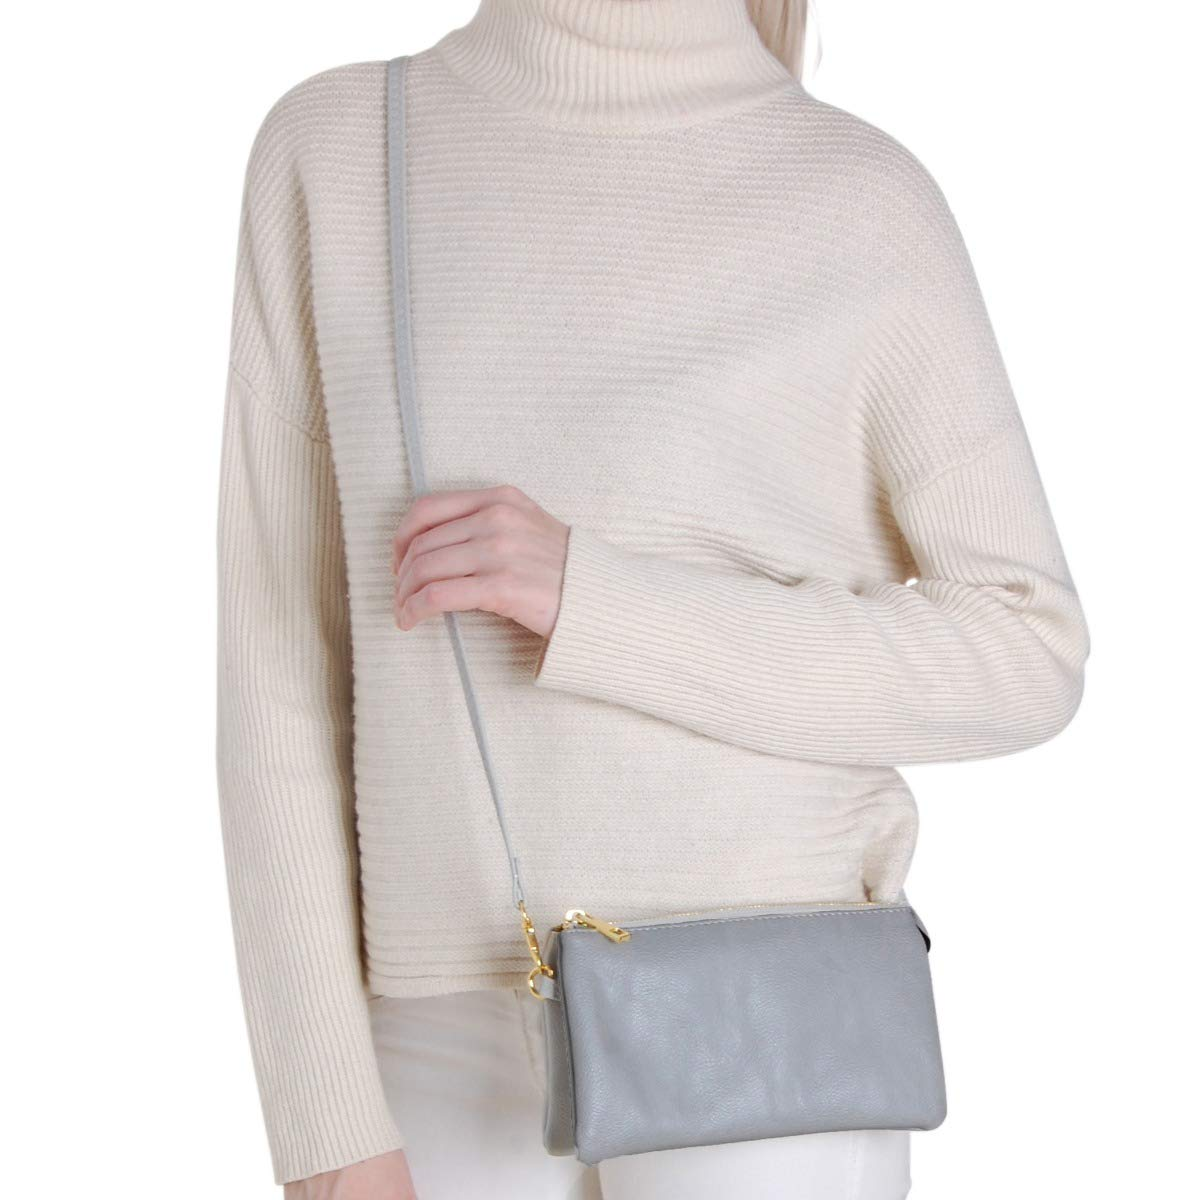 Includes Adjustable Shoulder and Wrist Straps Humble Chic Vegan Leather Small Crossbody Bag or Wristlet Clutch Purse